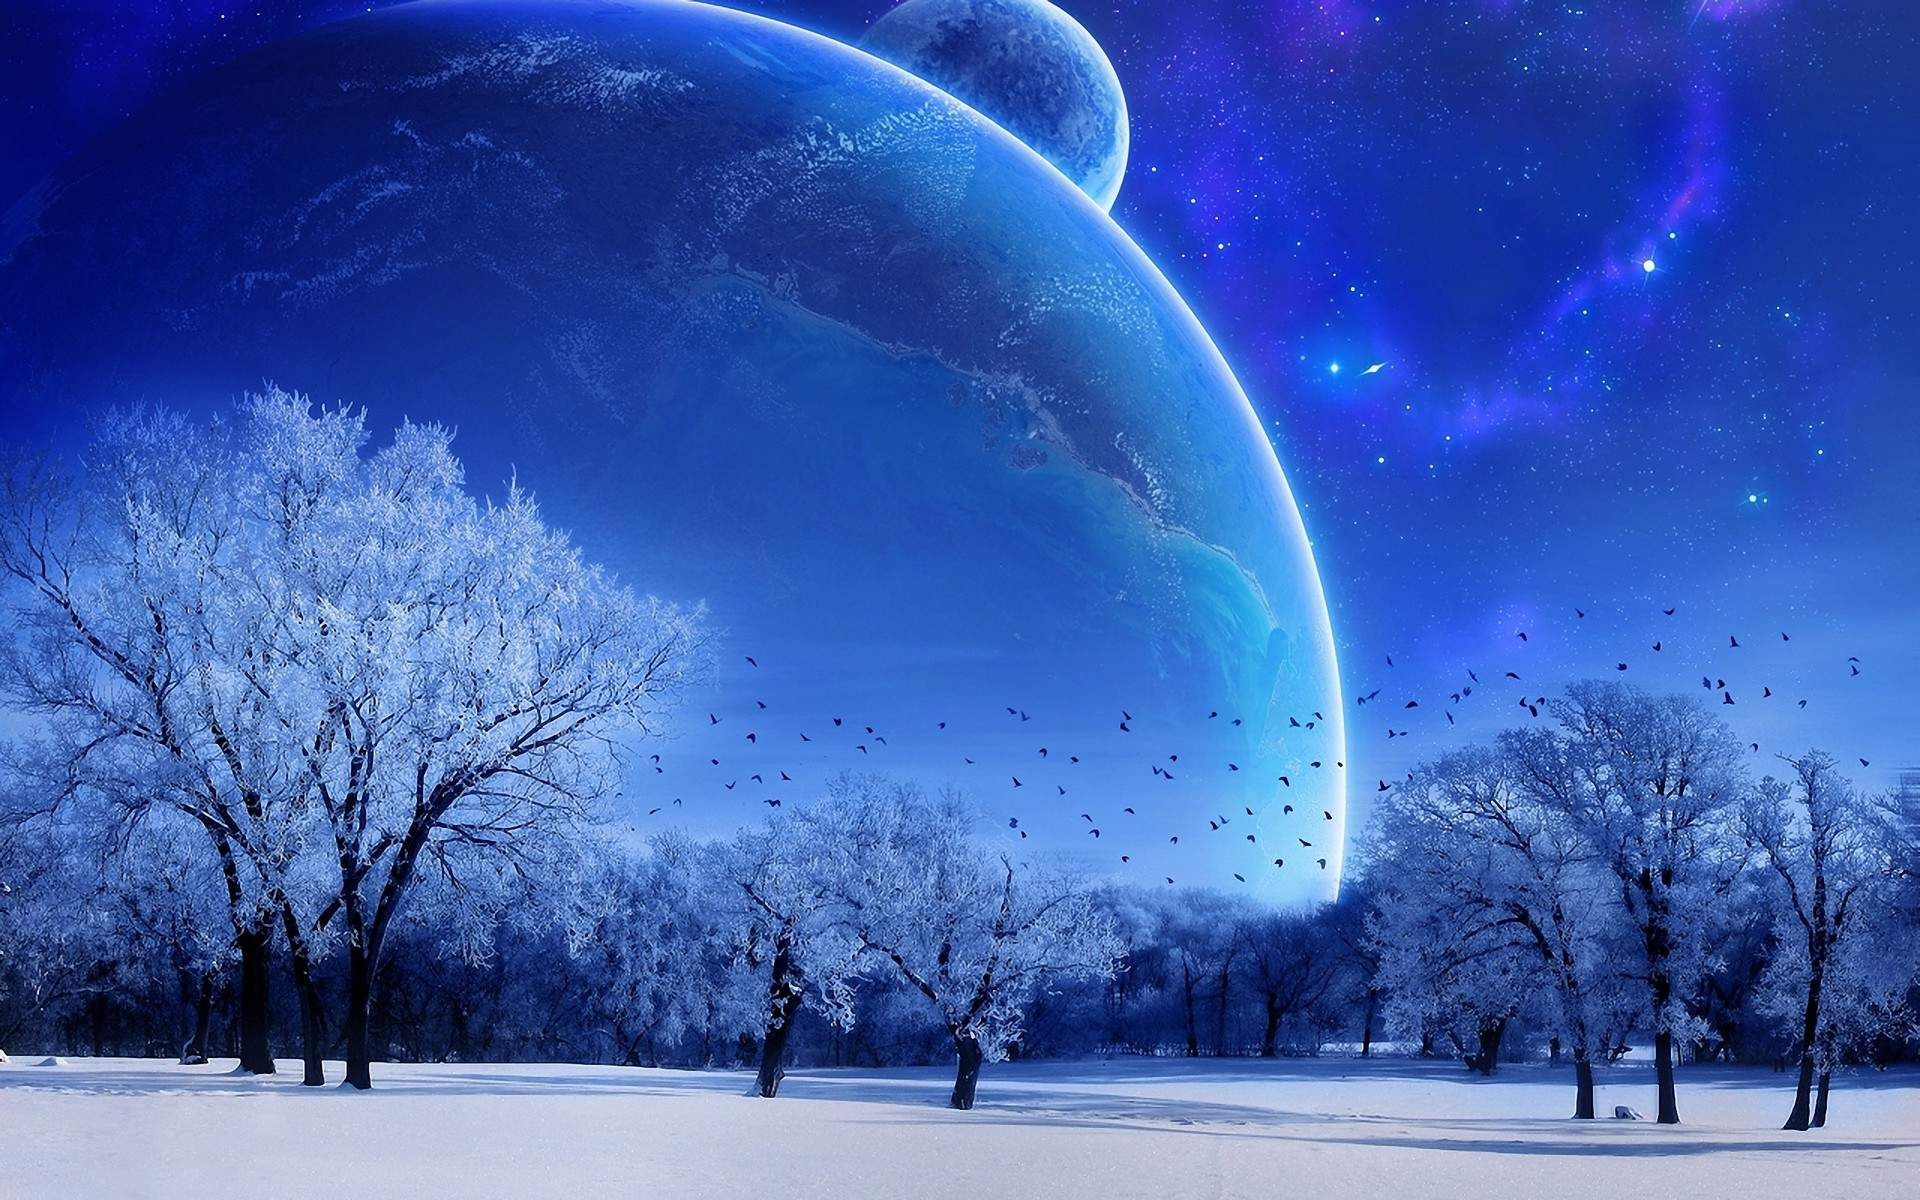 Winter Nature Wallpapers With Images Planets Wallpaper